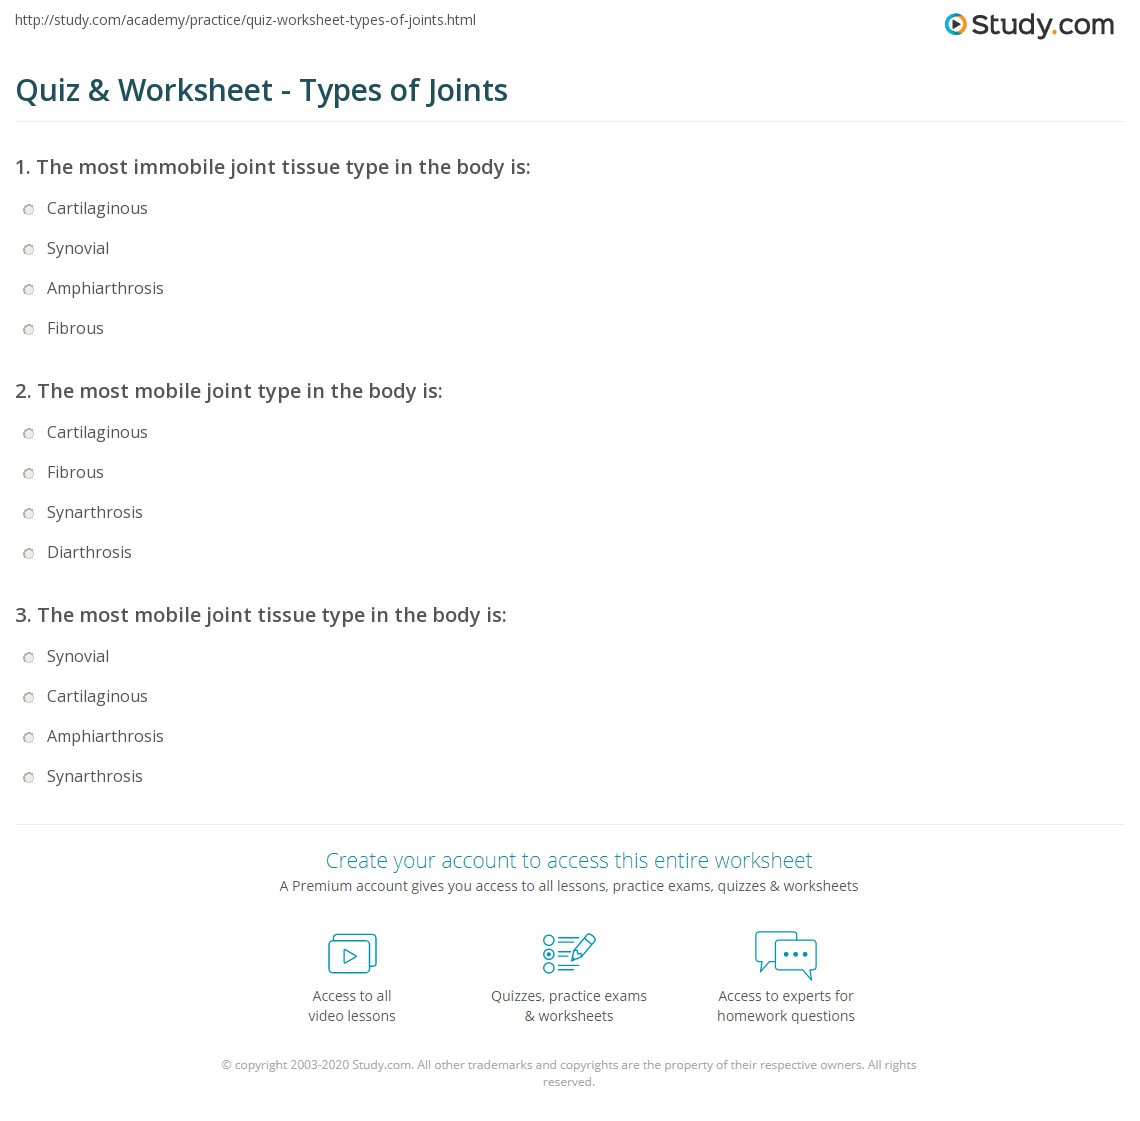 Quiz & Worksheet - Types of Joints | Study.com